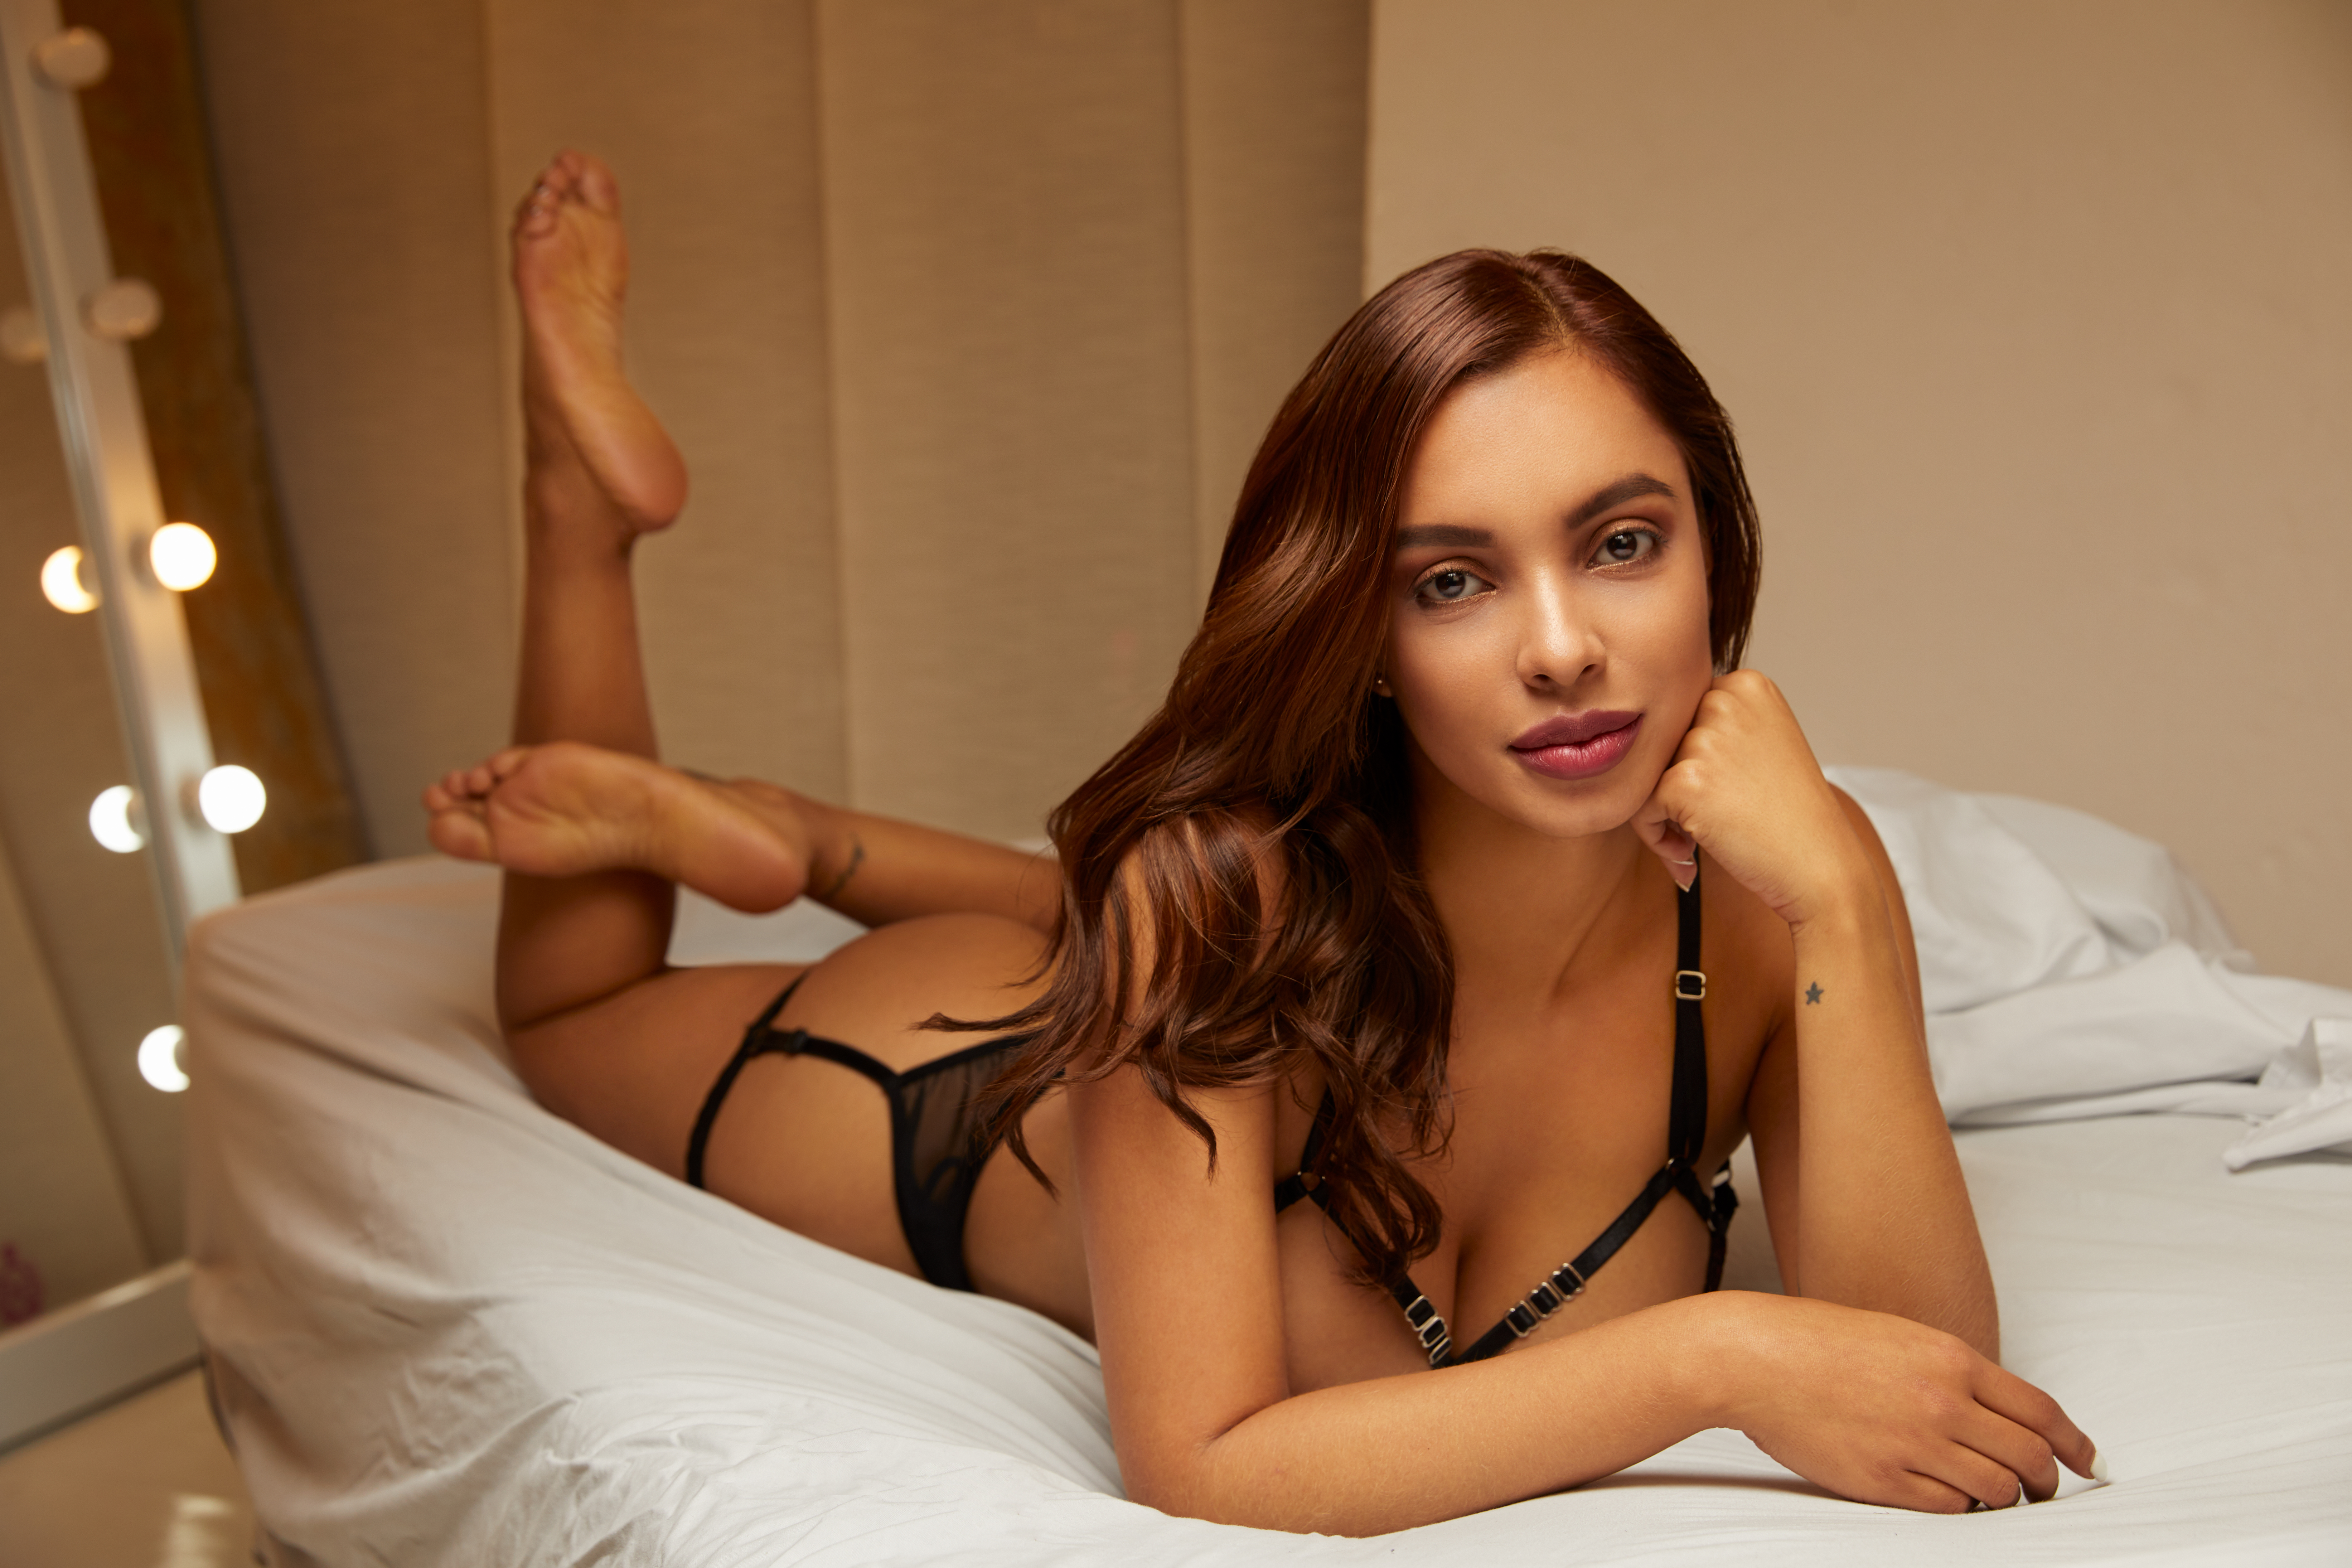 Glamour Girl: Q and A With Lingerie and Lifestyle Model, Dania Gonzalez